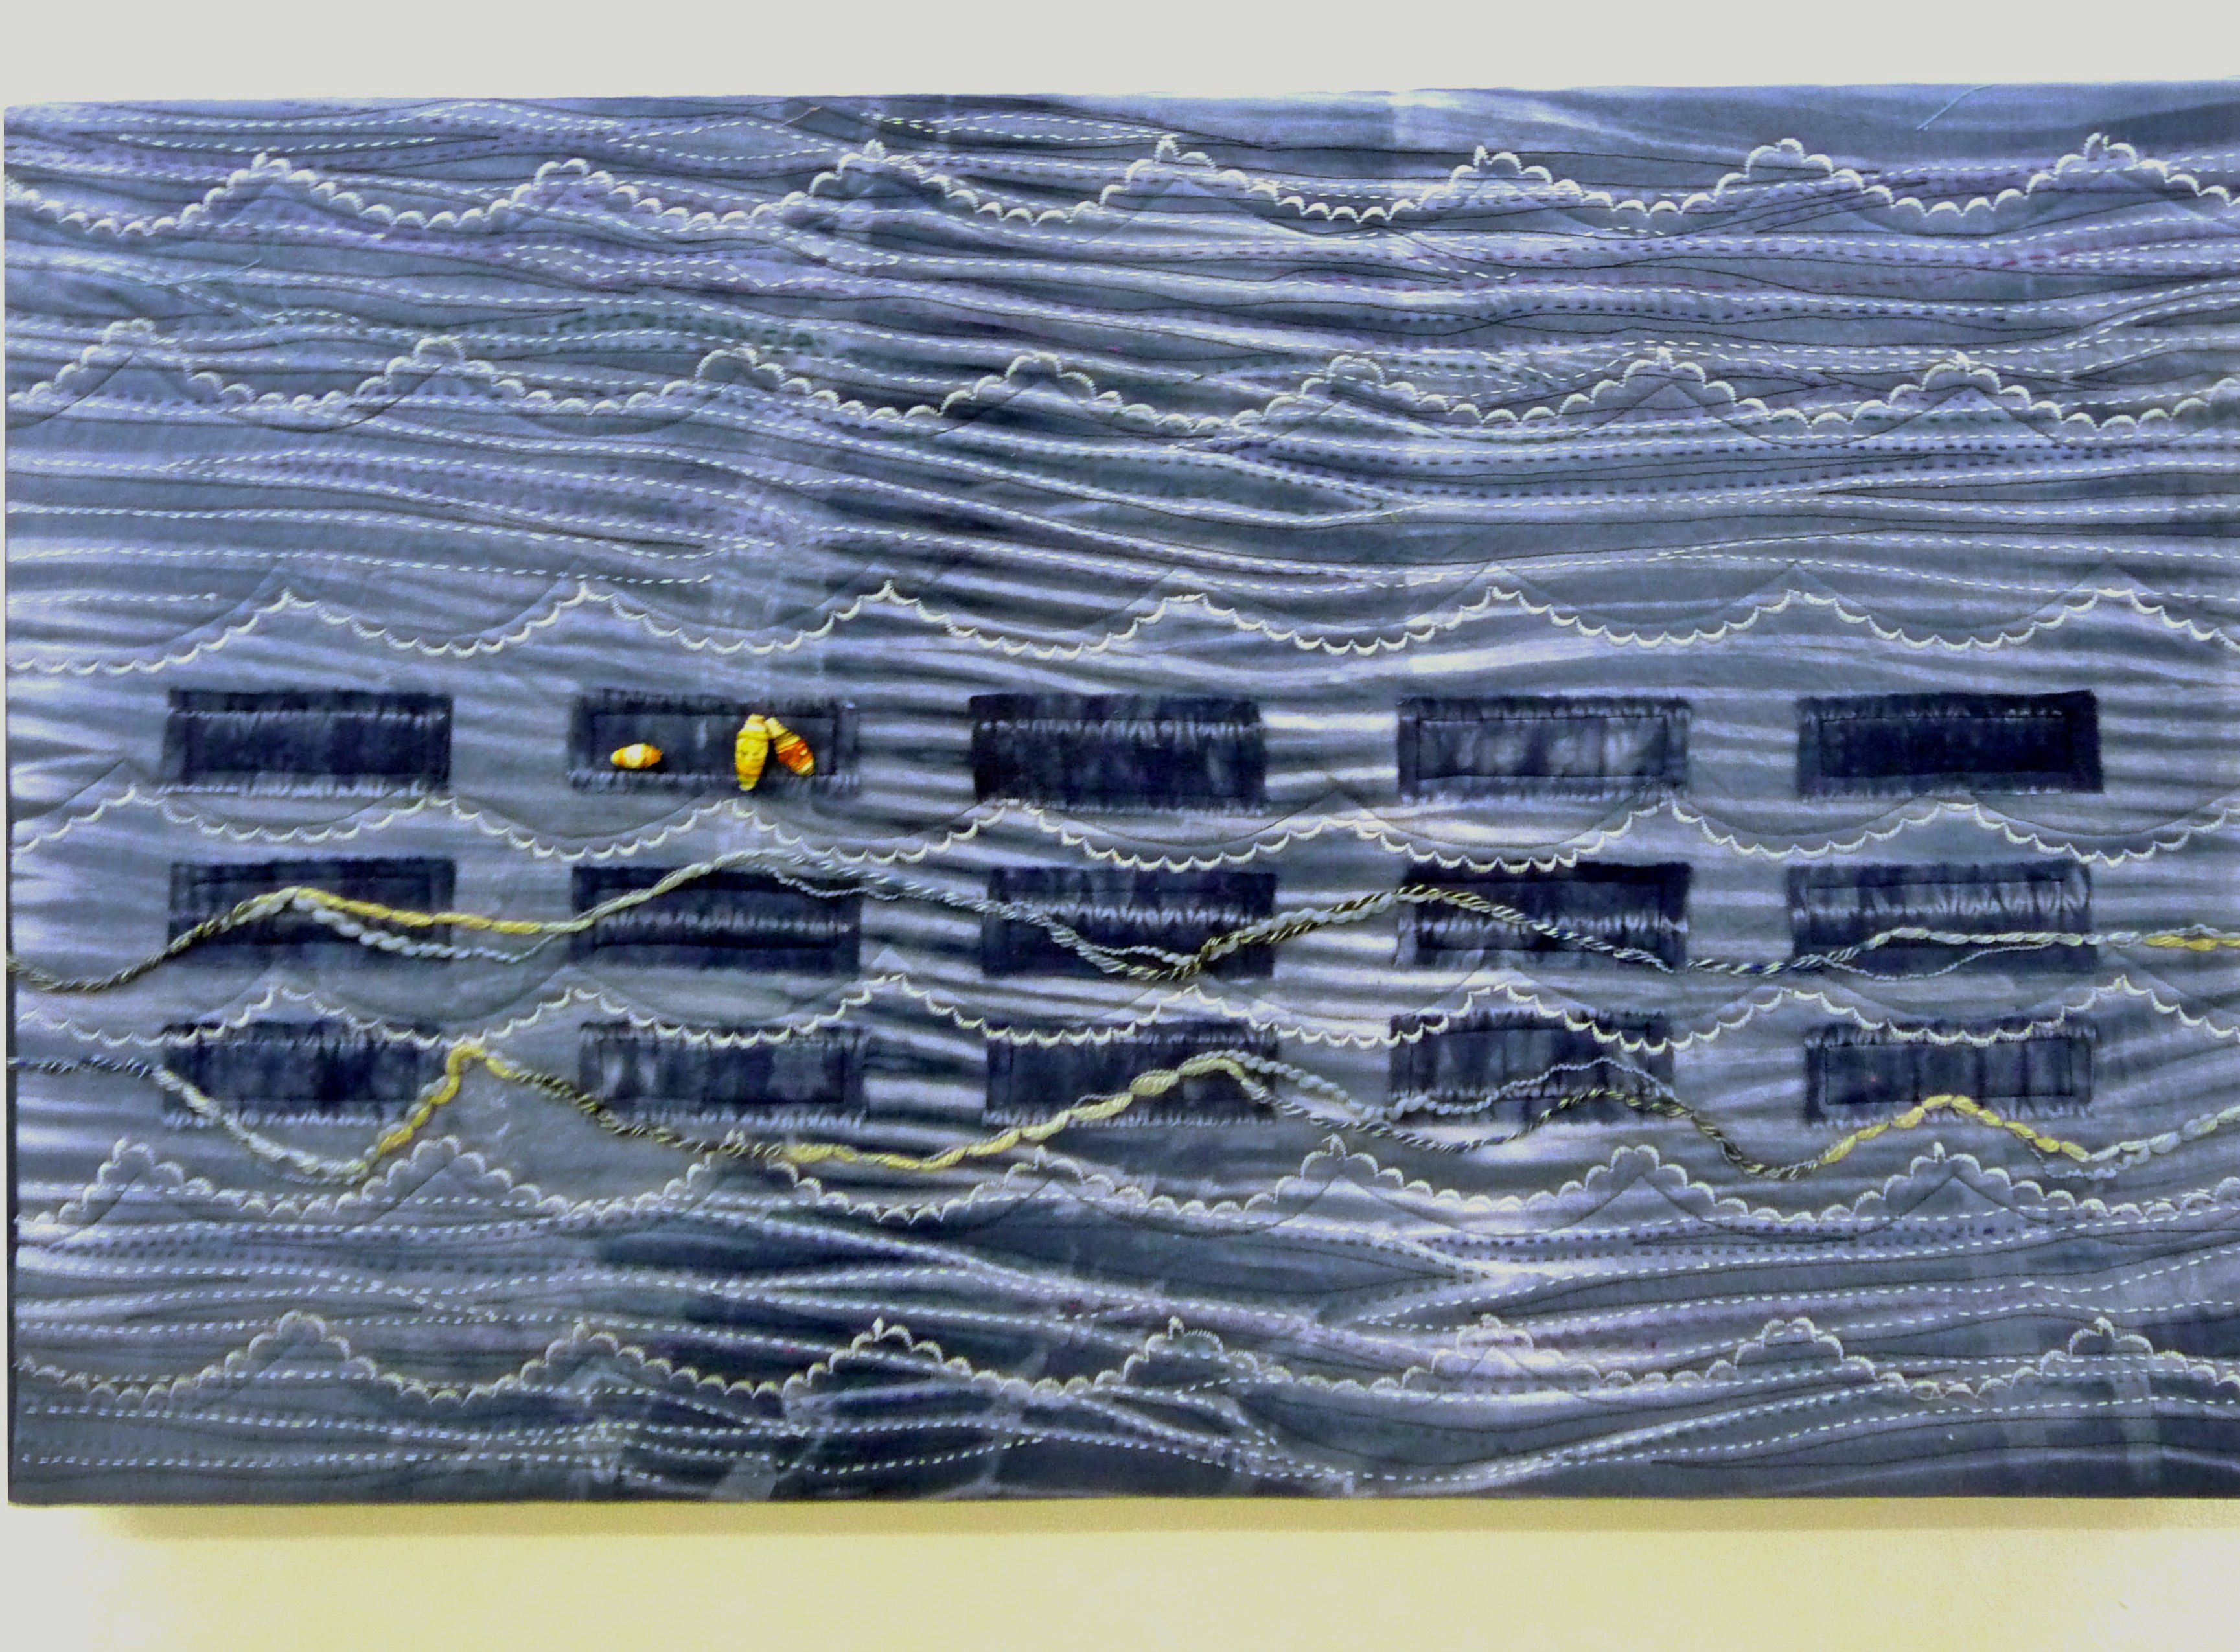 WATCHING THE WAVES by Sue Boardman, textile